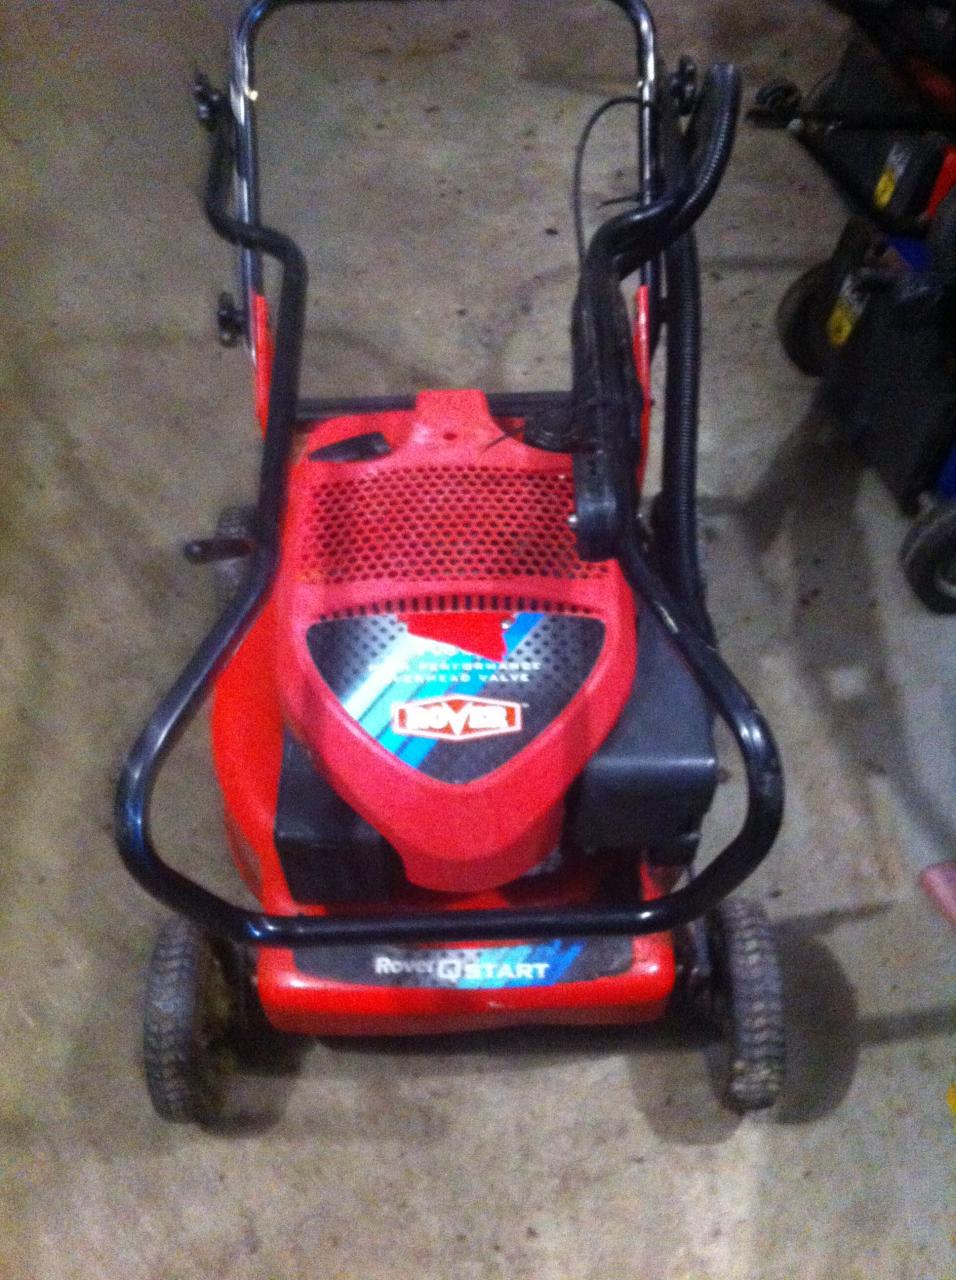 rover i4500 lawn mower outdoorking repair forum rh outdoorking com Rover Animal Space Rover